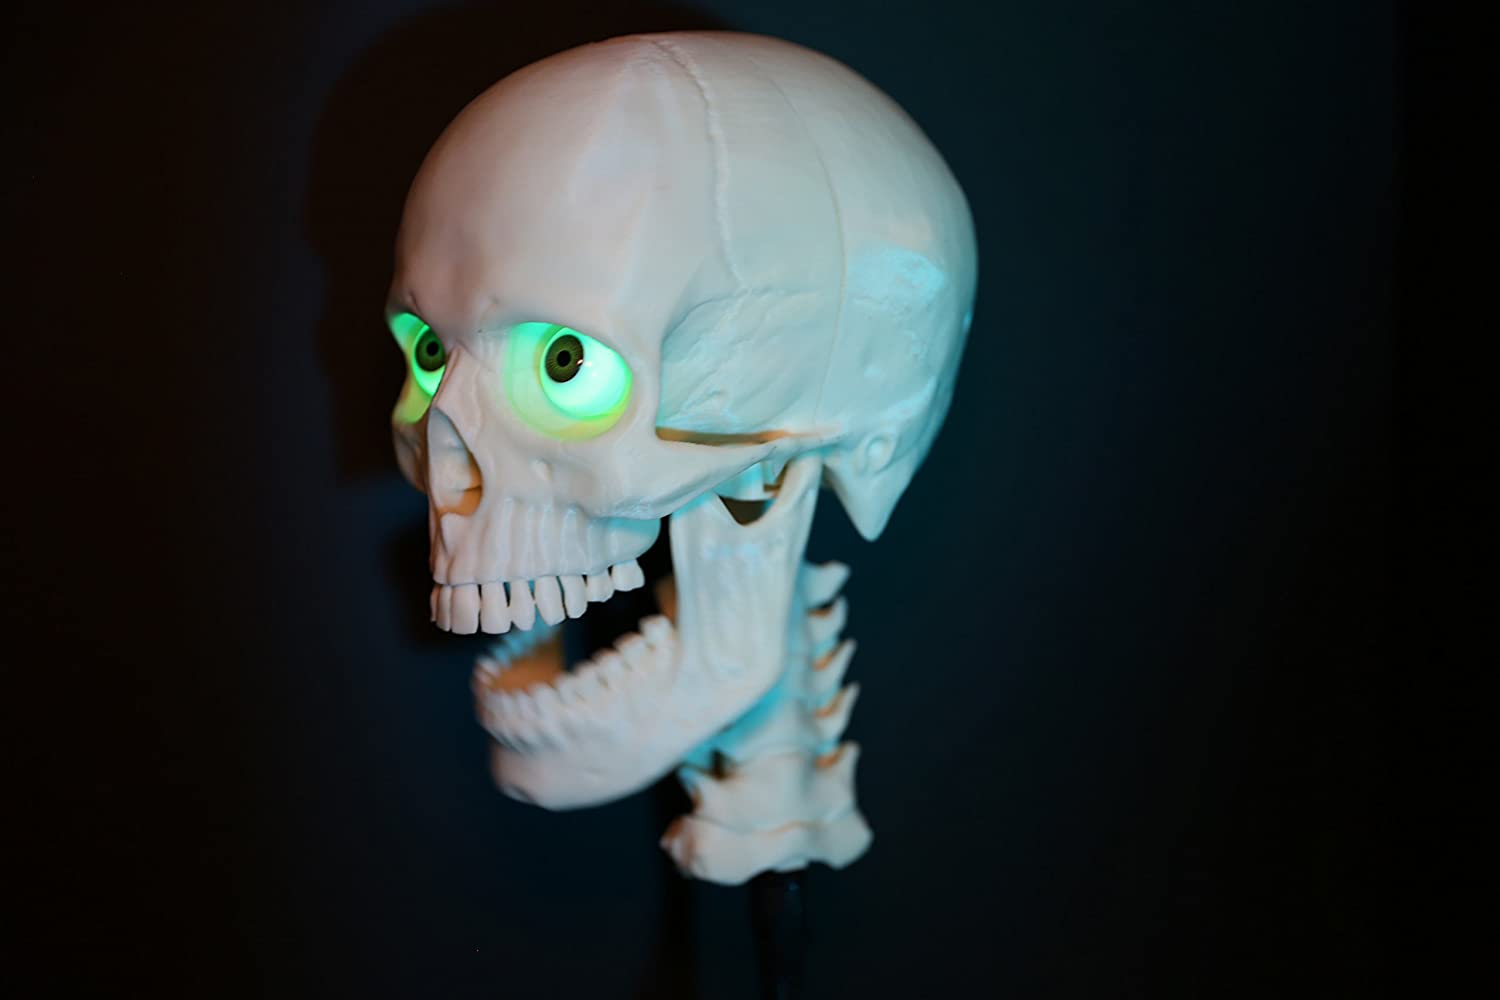 Amazon.com: Animatronic programmable 3-Axis talking skull from ...